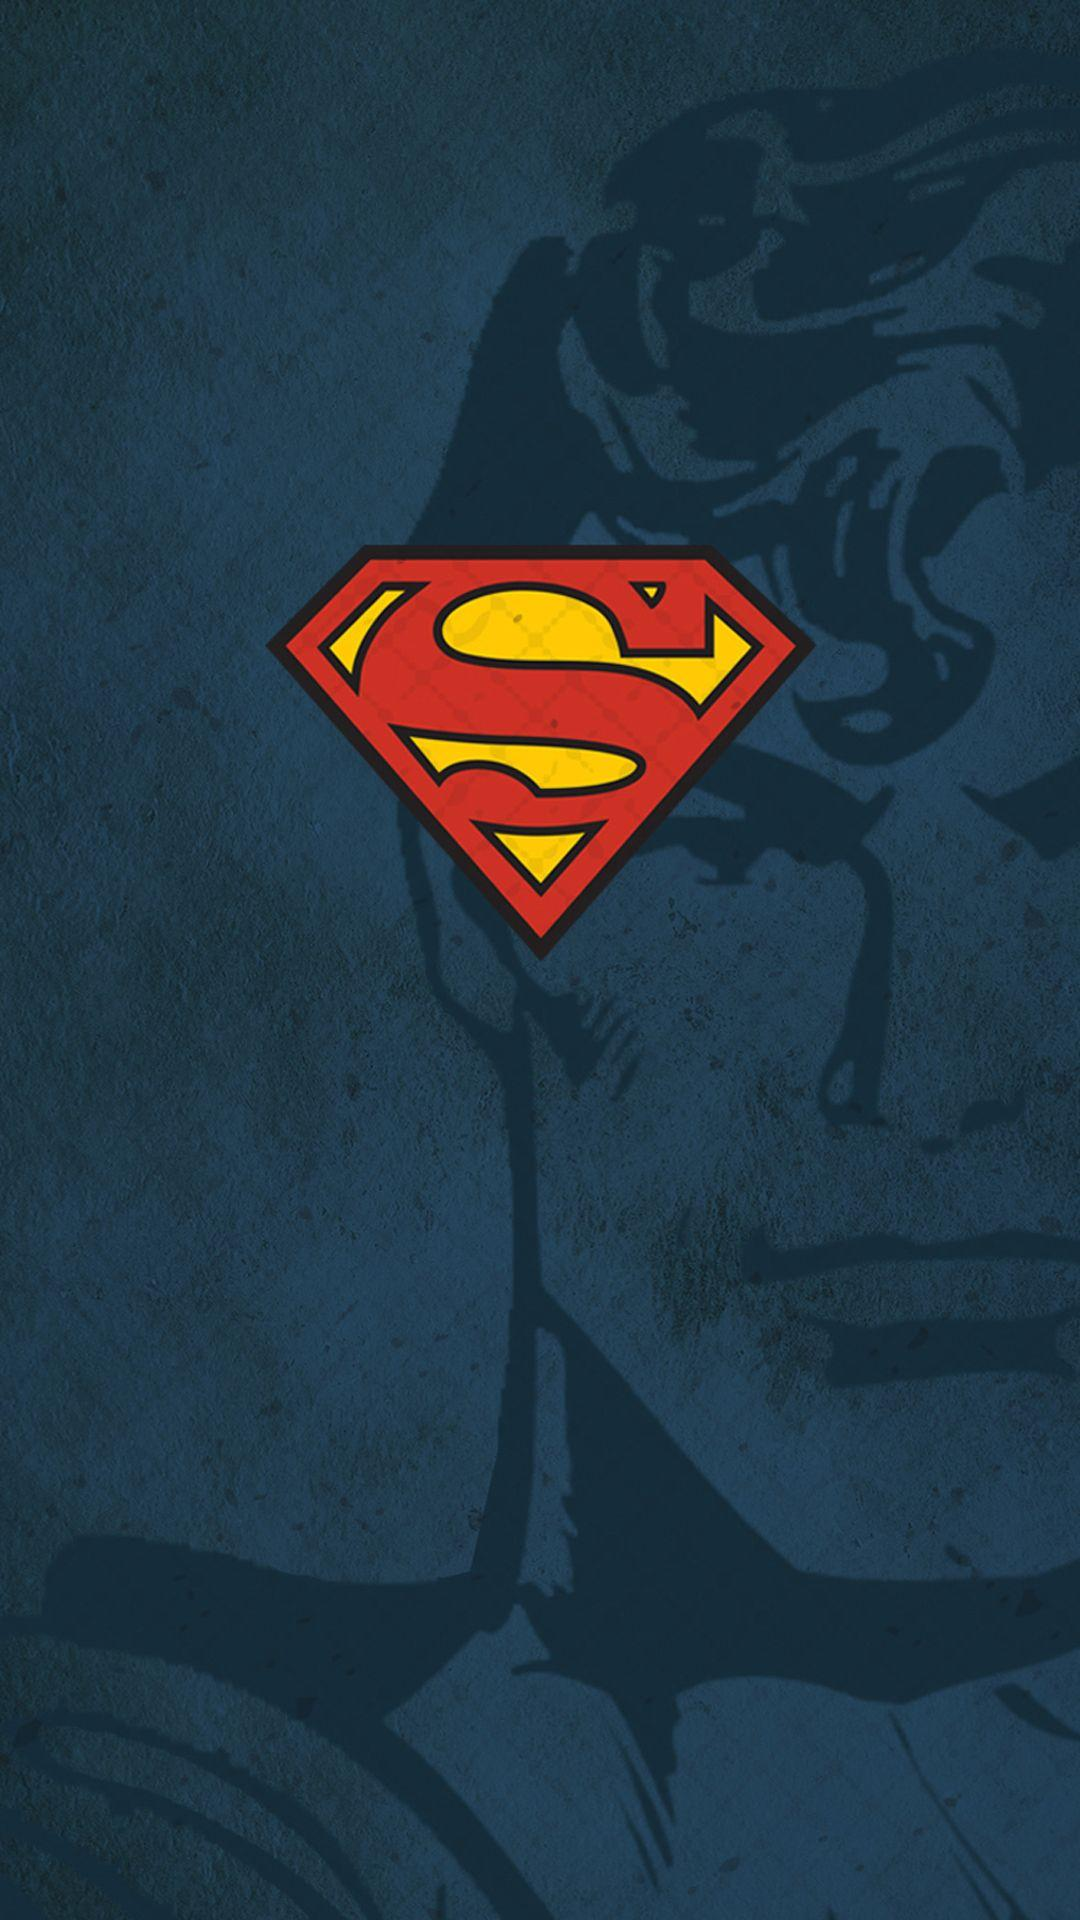 Superman Iphone Wallpapers Wallpaper Cave